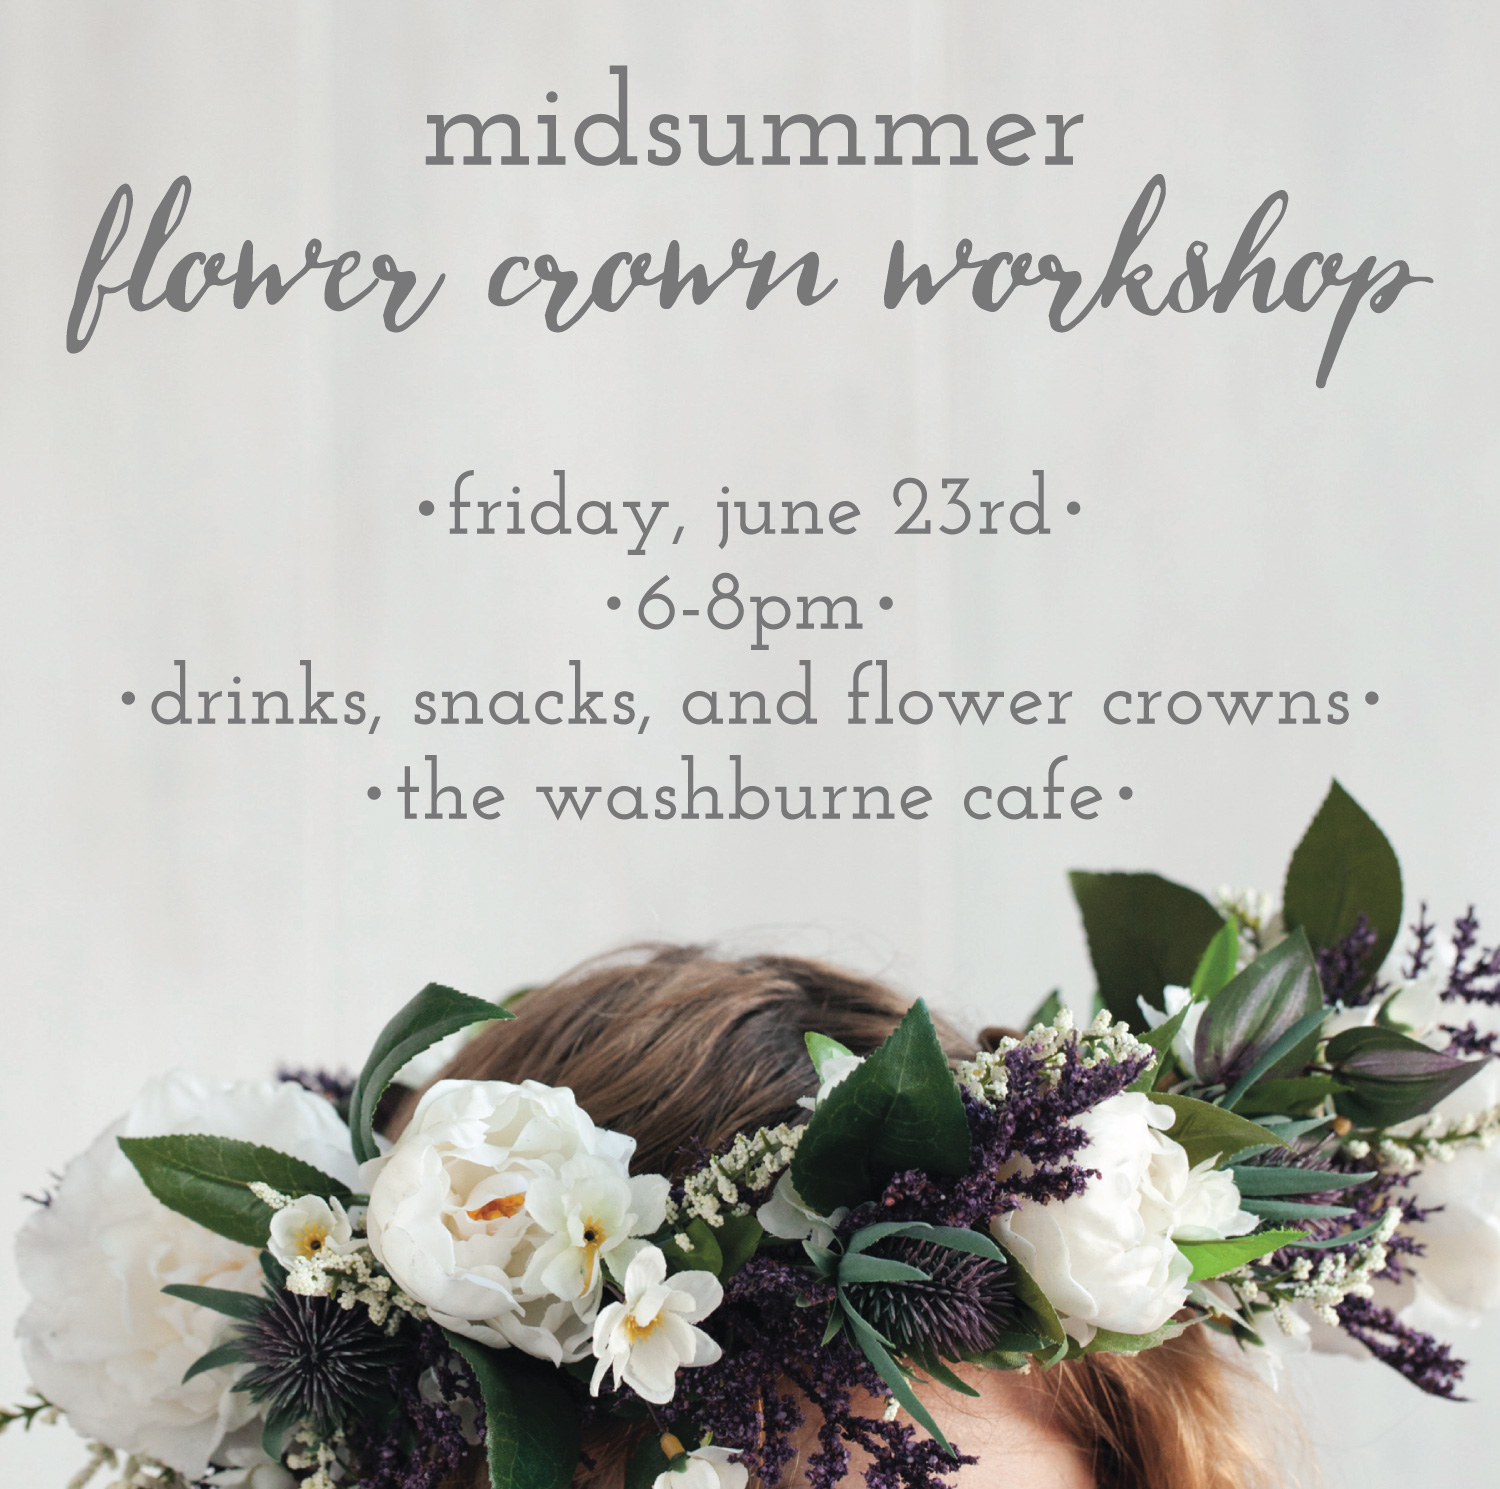 Make flower crowns for midsummer at this hands-on workshop!